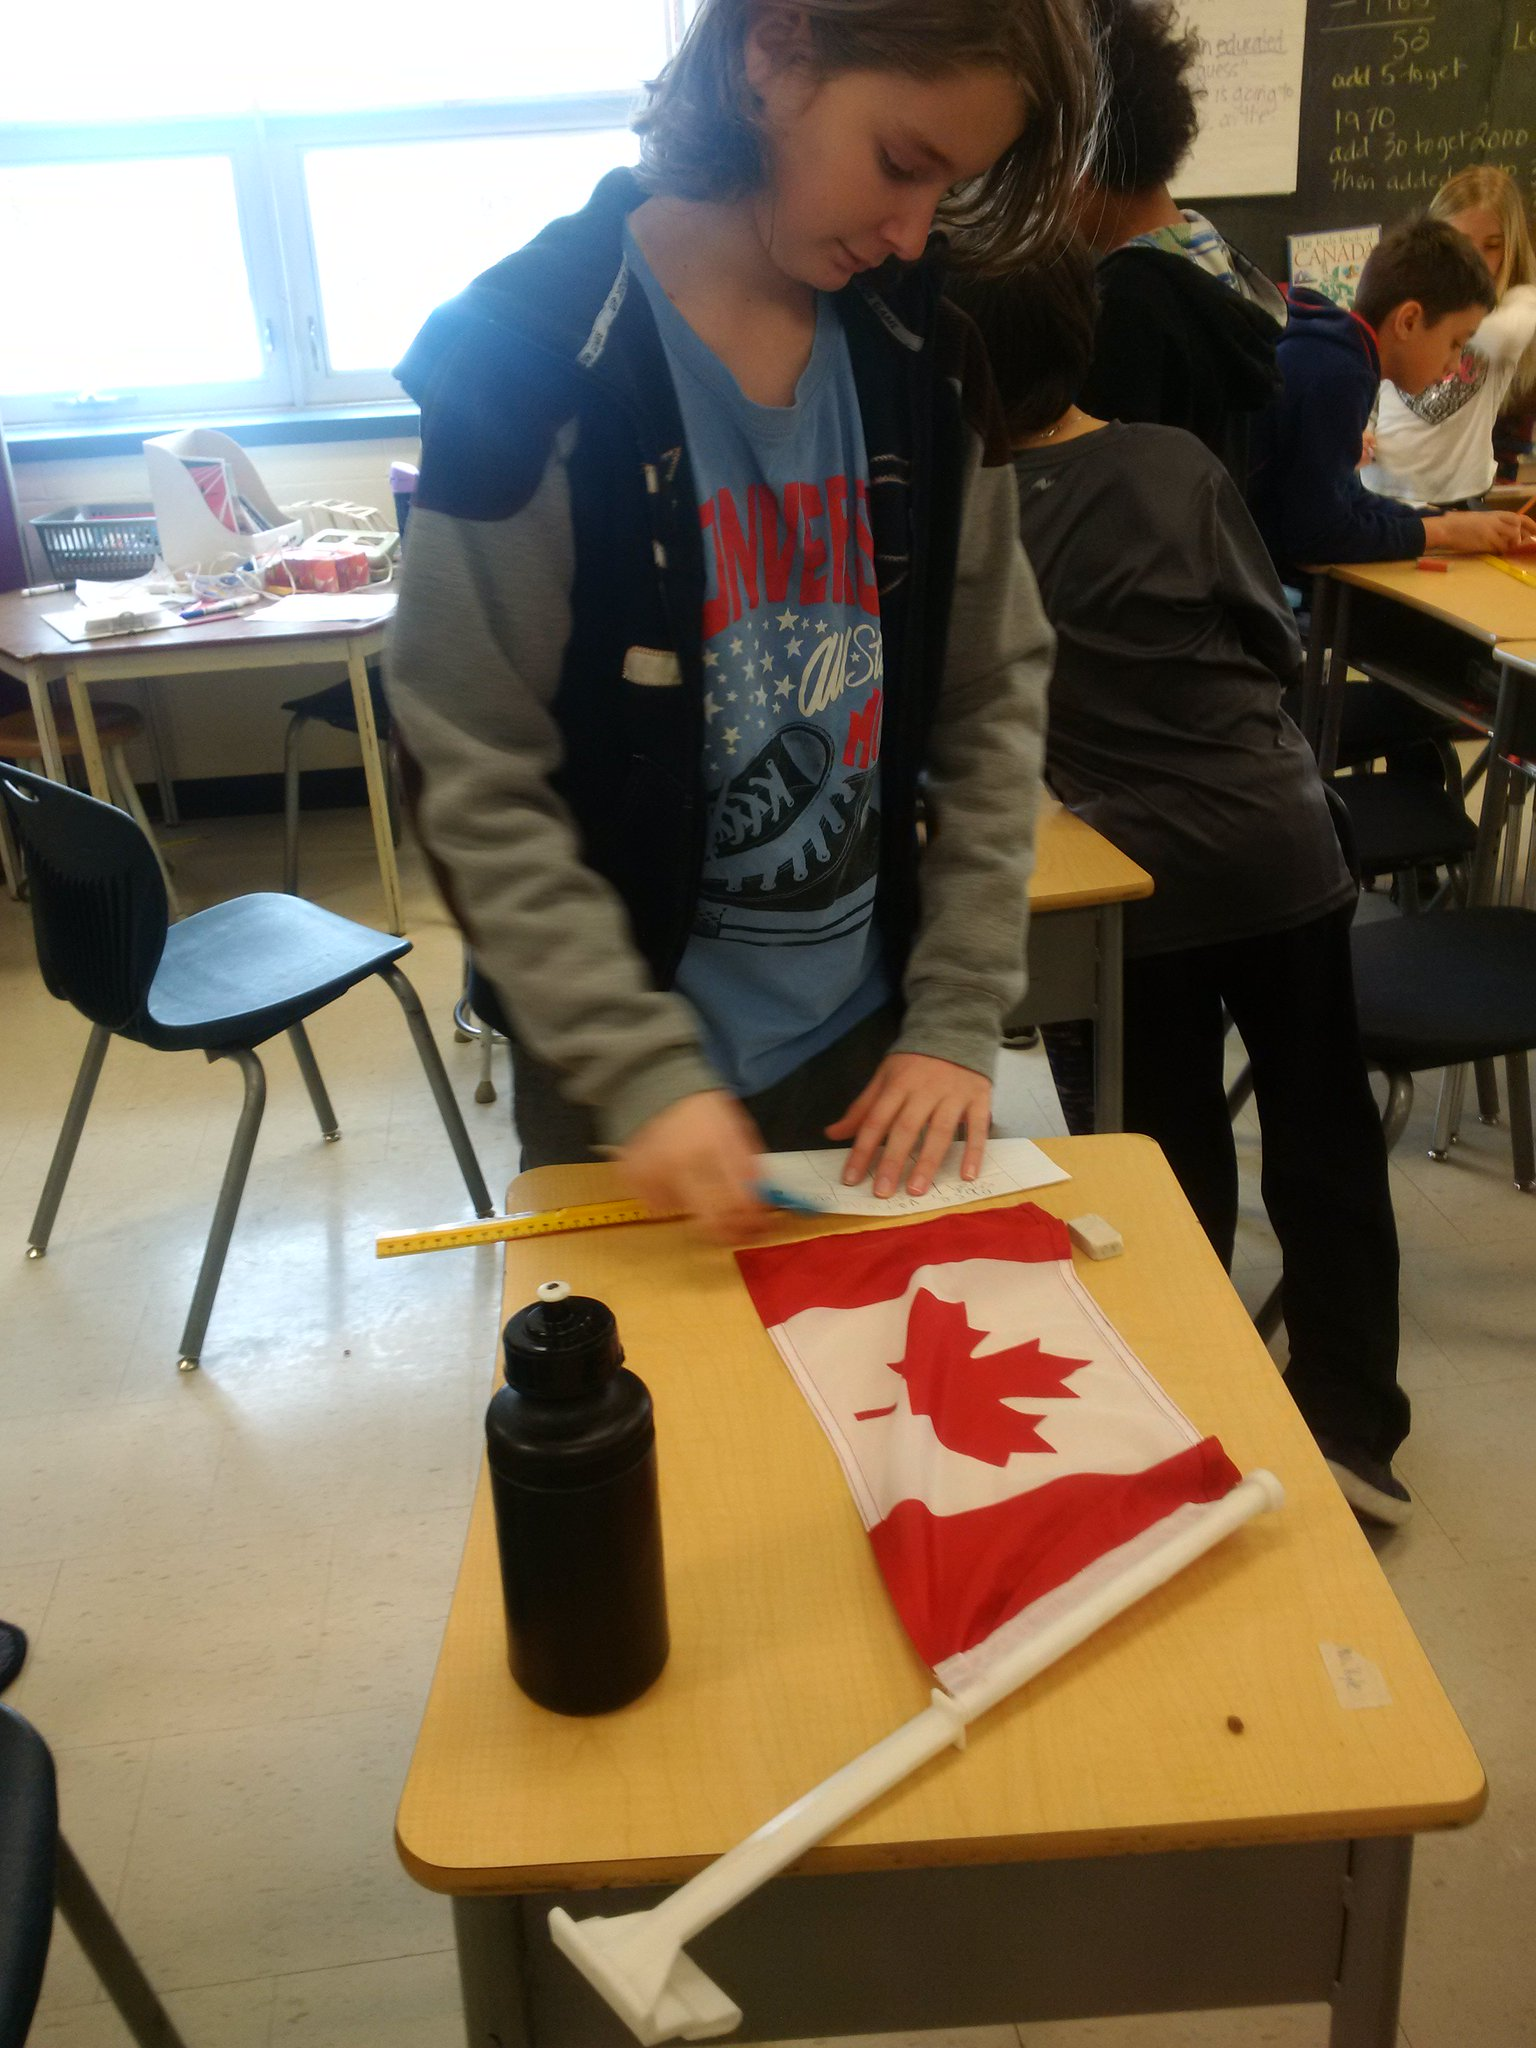 Happy Birthday to the flag of Canada! Canadian Flag inquiry..what things do all CFS have in common?